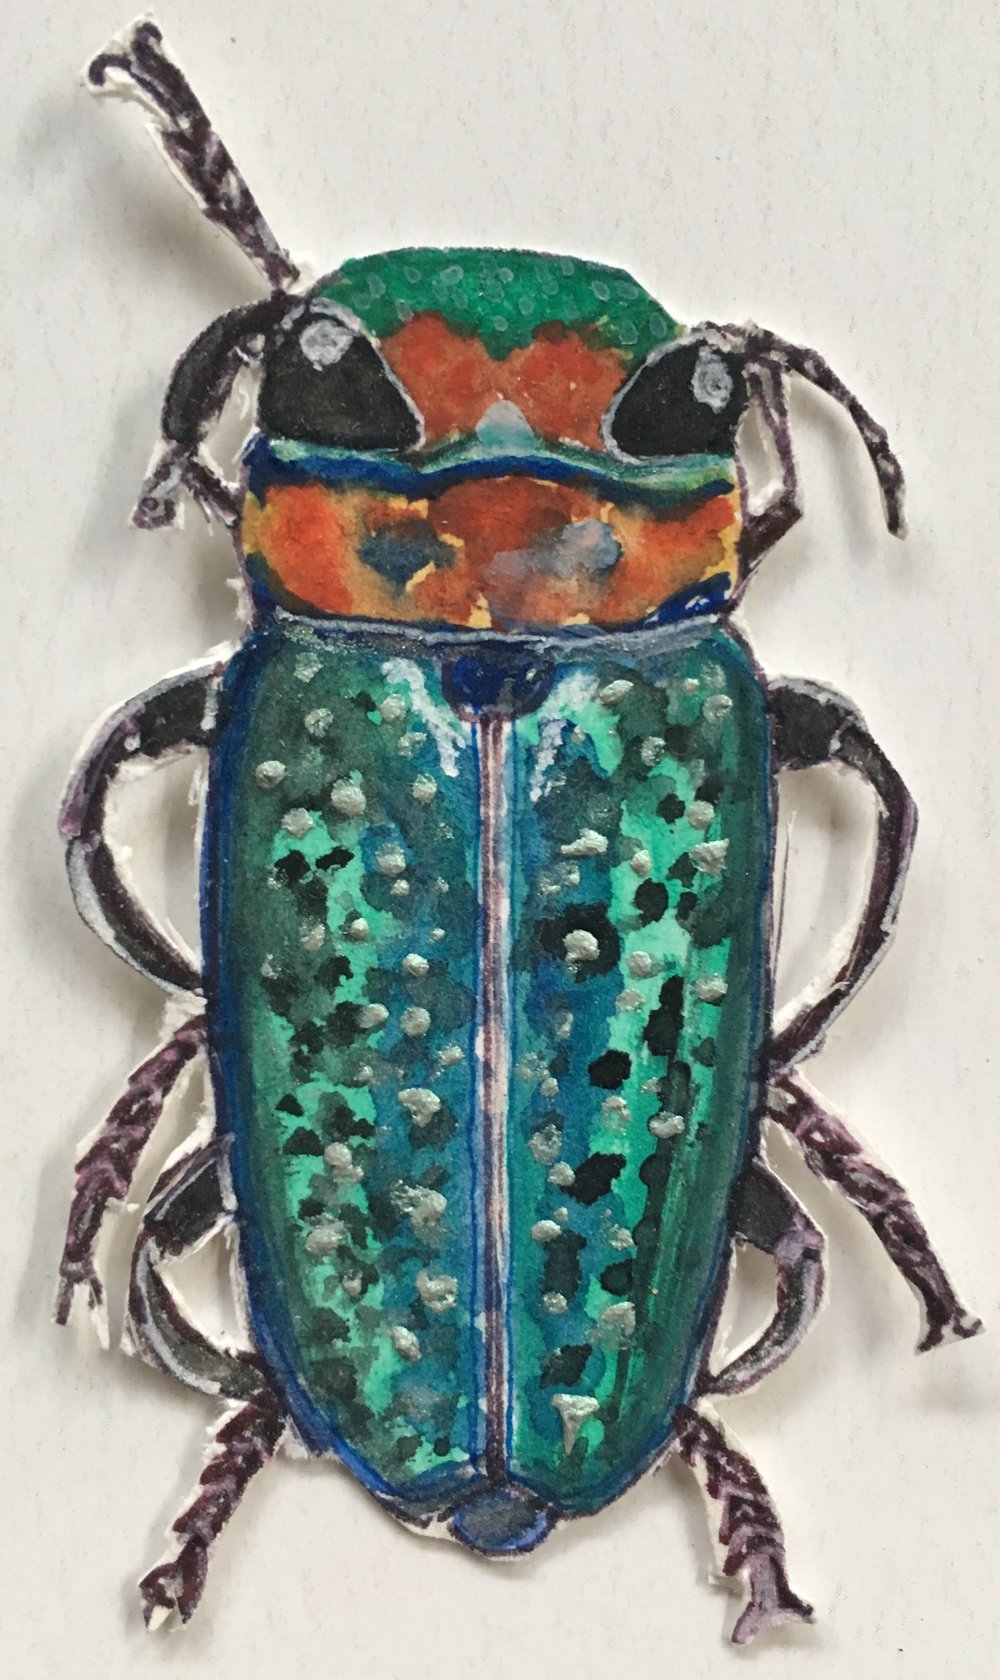 coulorful spotted bug cut out.jpg